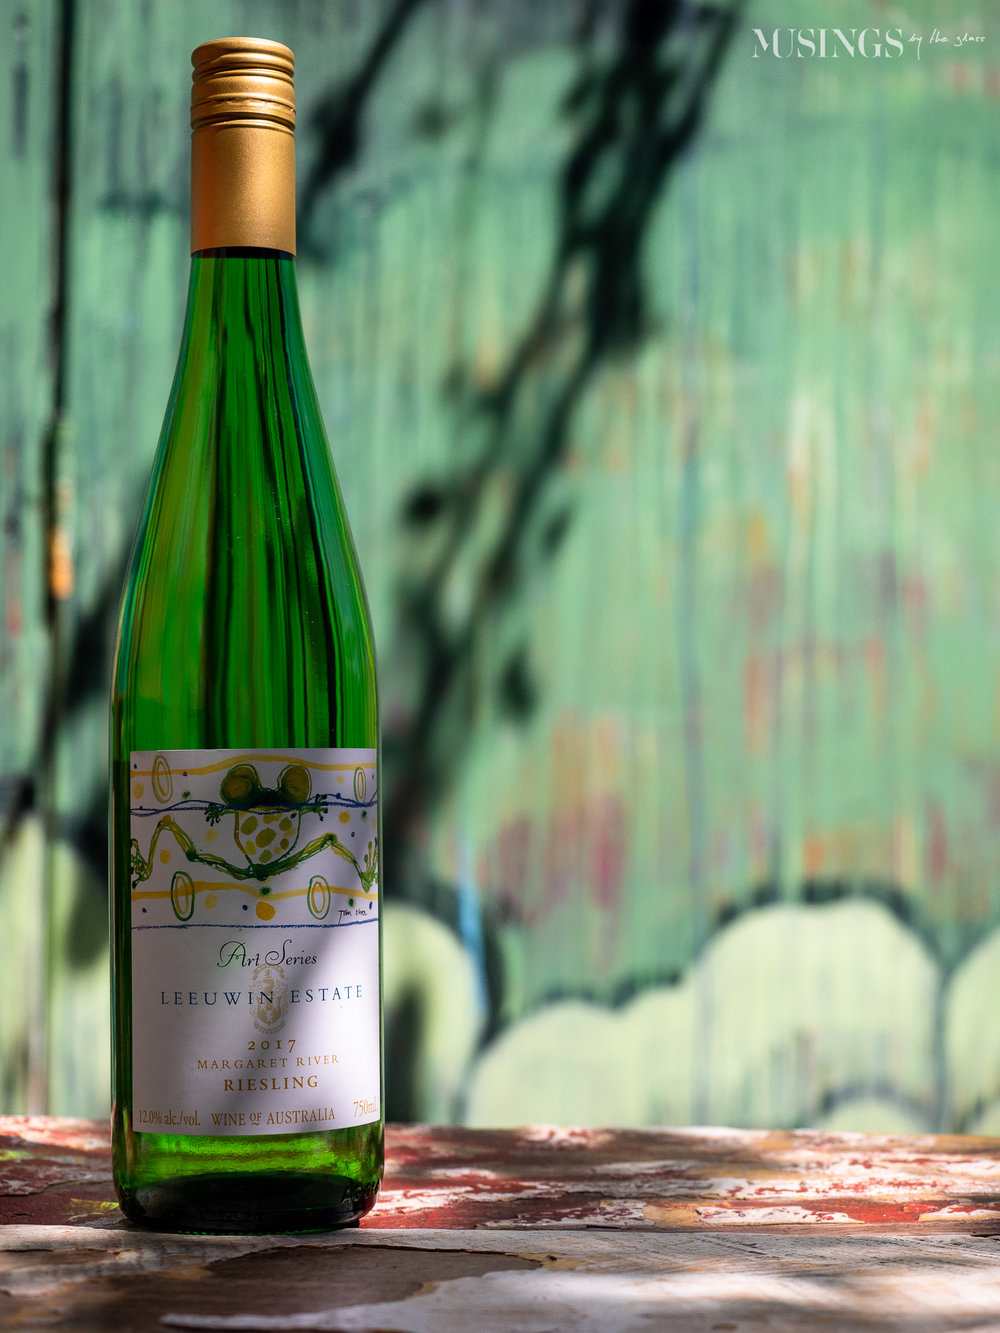 An Art Series wine deserves an artsy background…